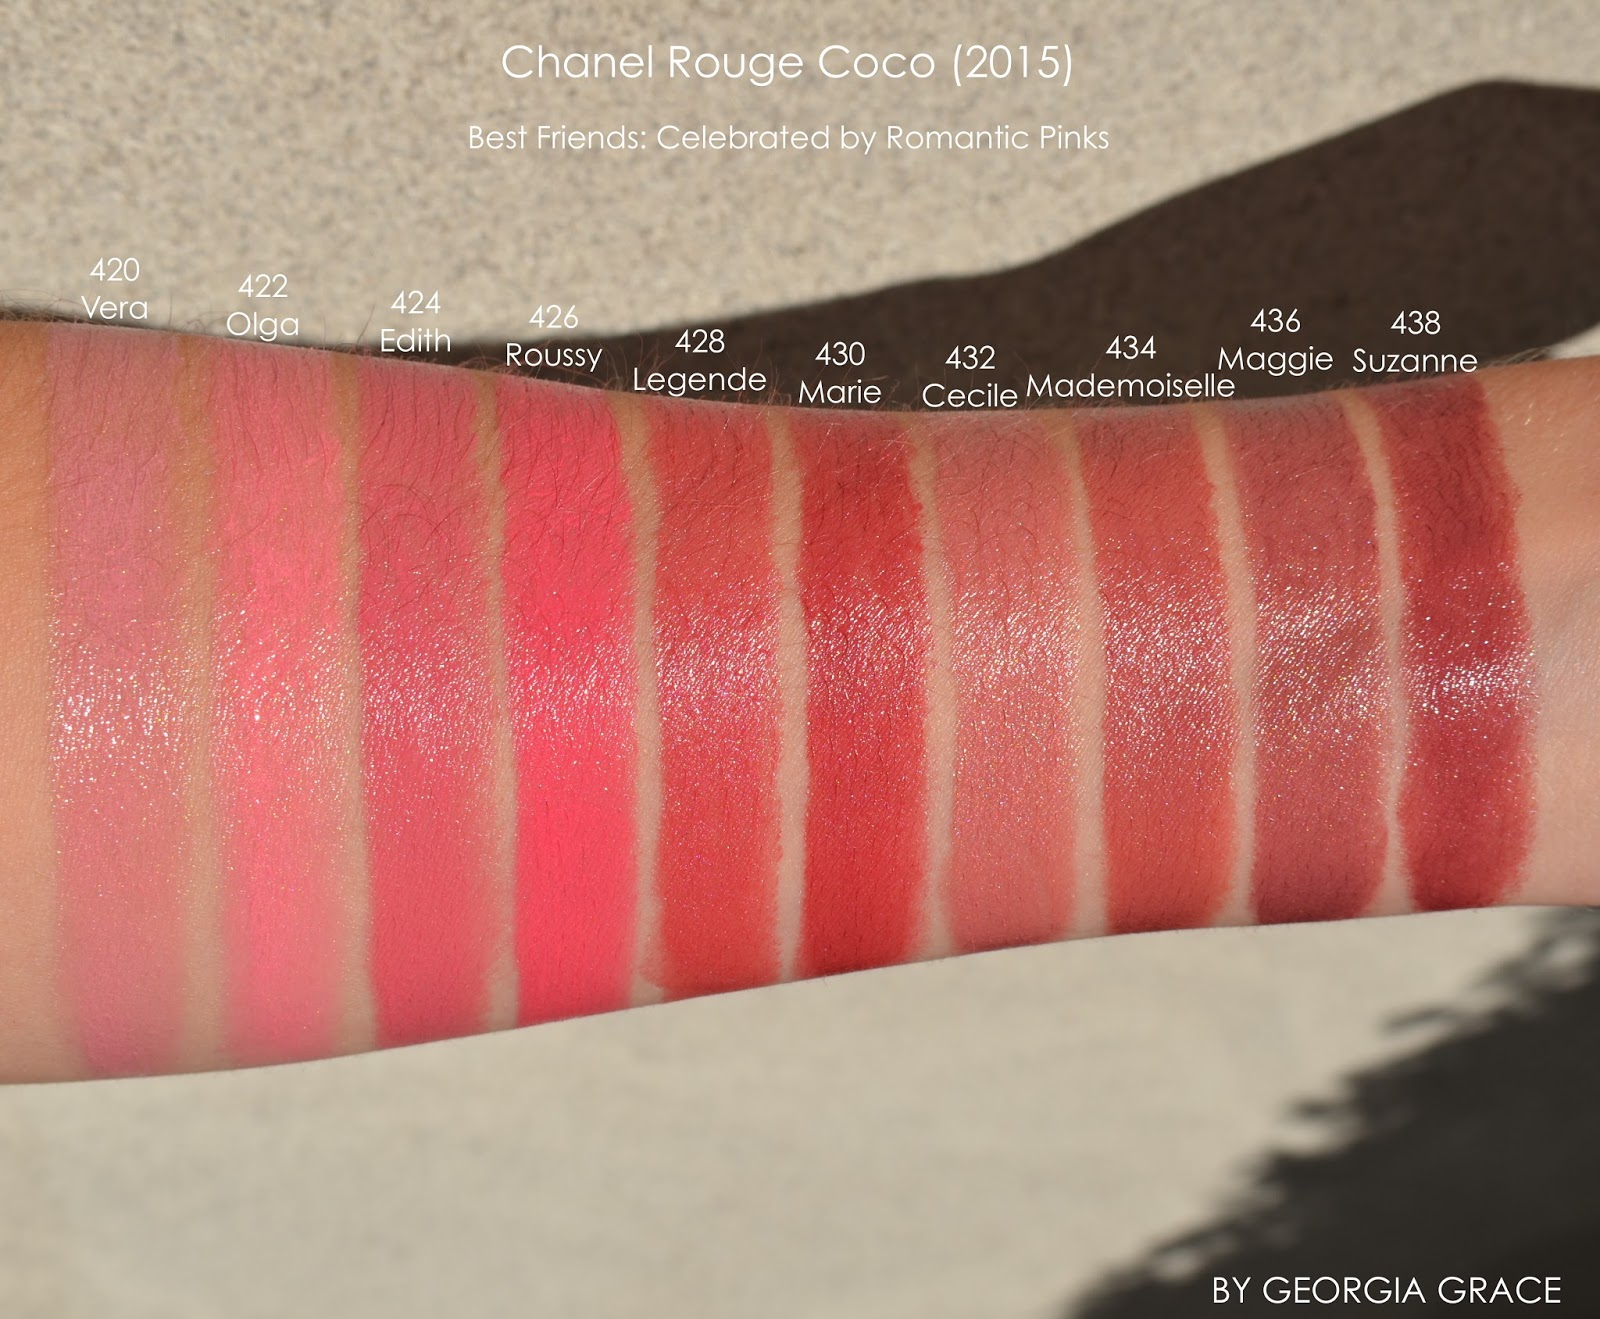 Chanel Rouge Coco Swatches Of All Shades By Georgia Grace